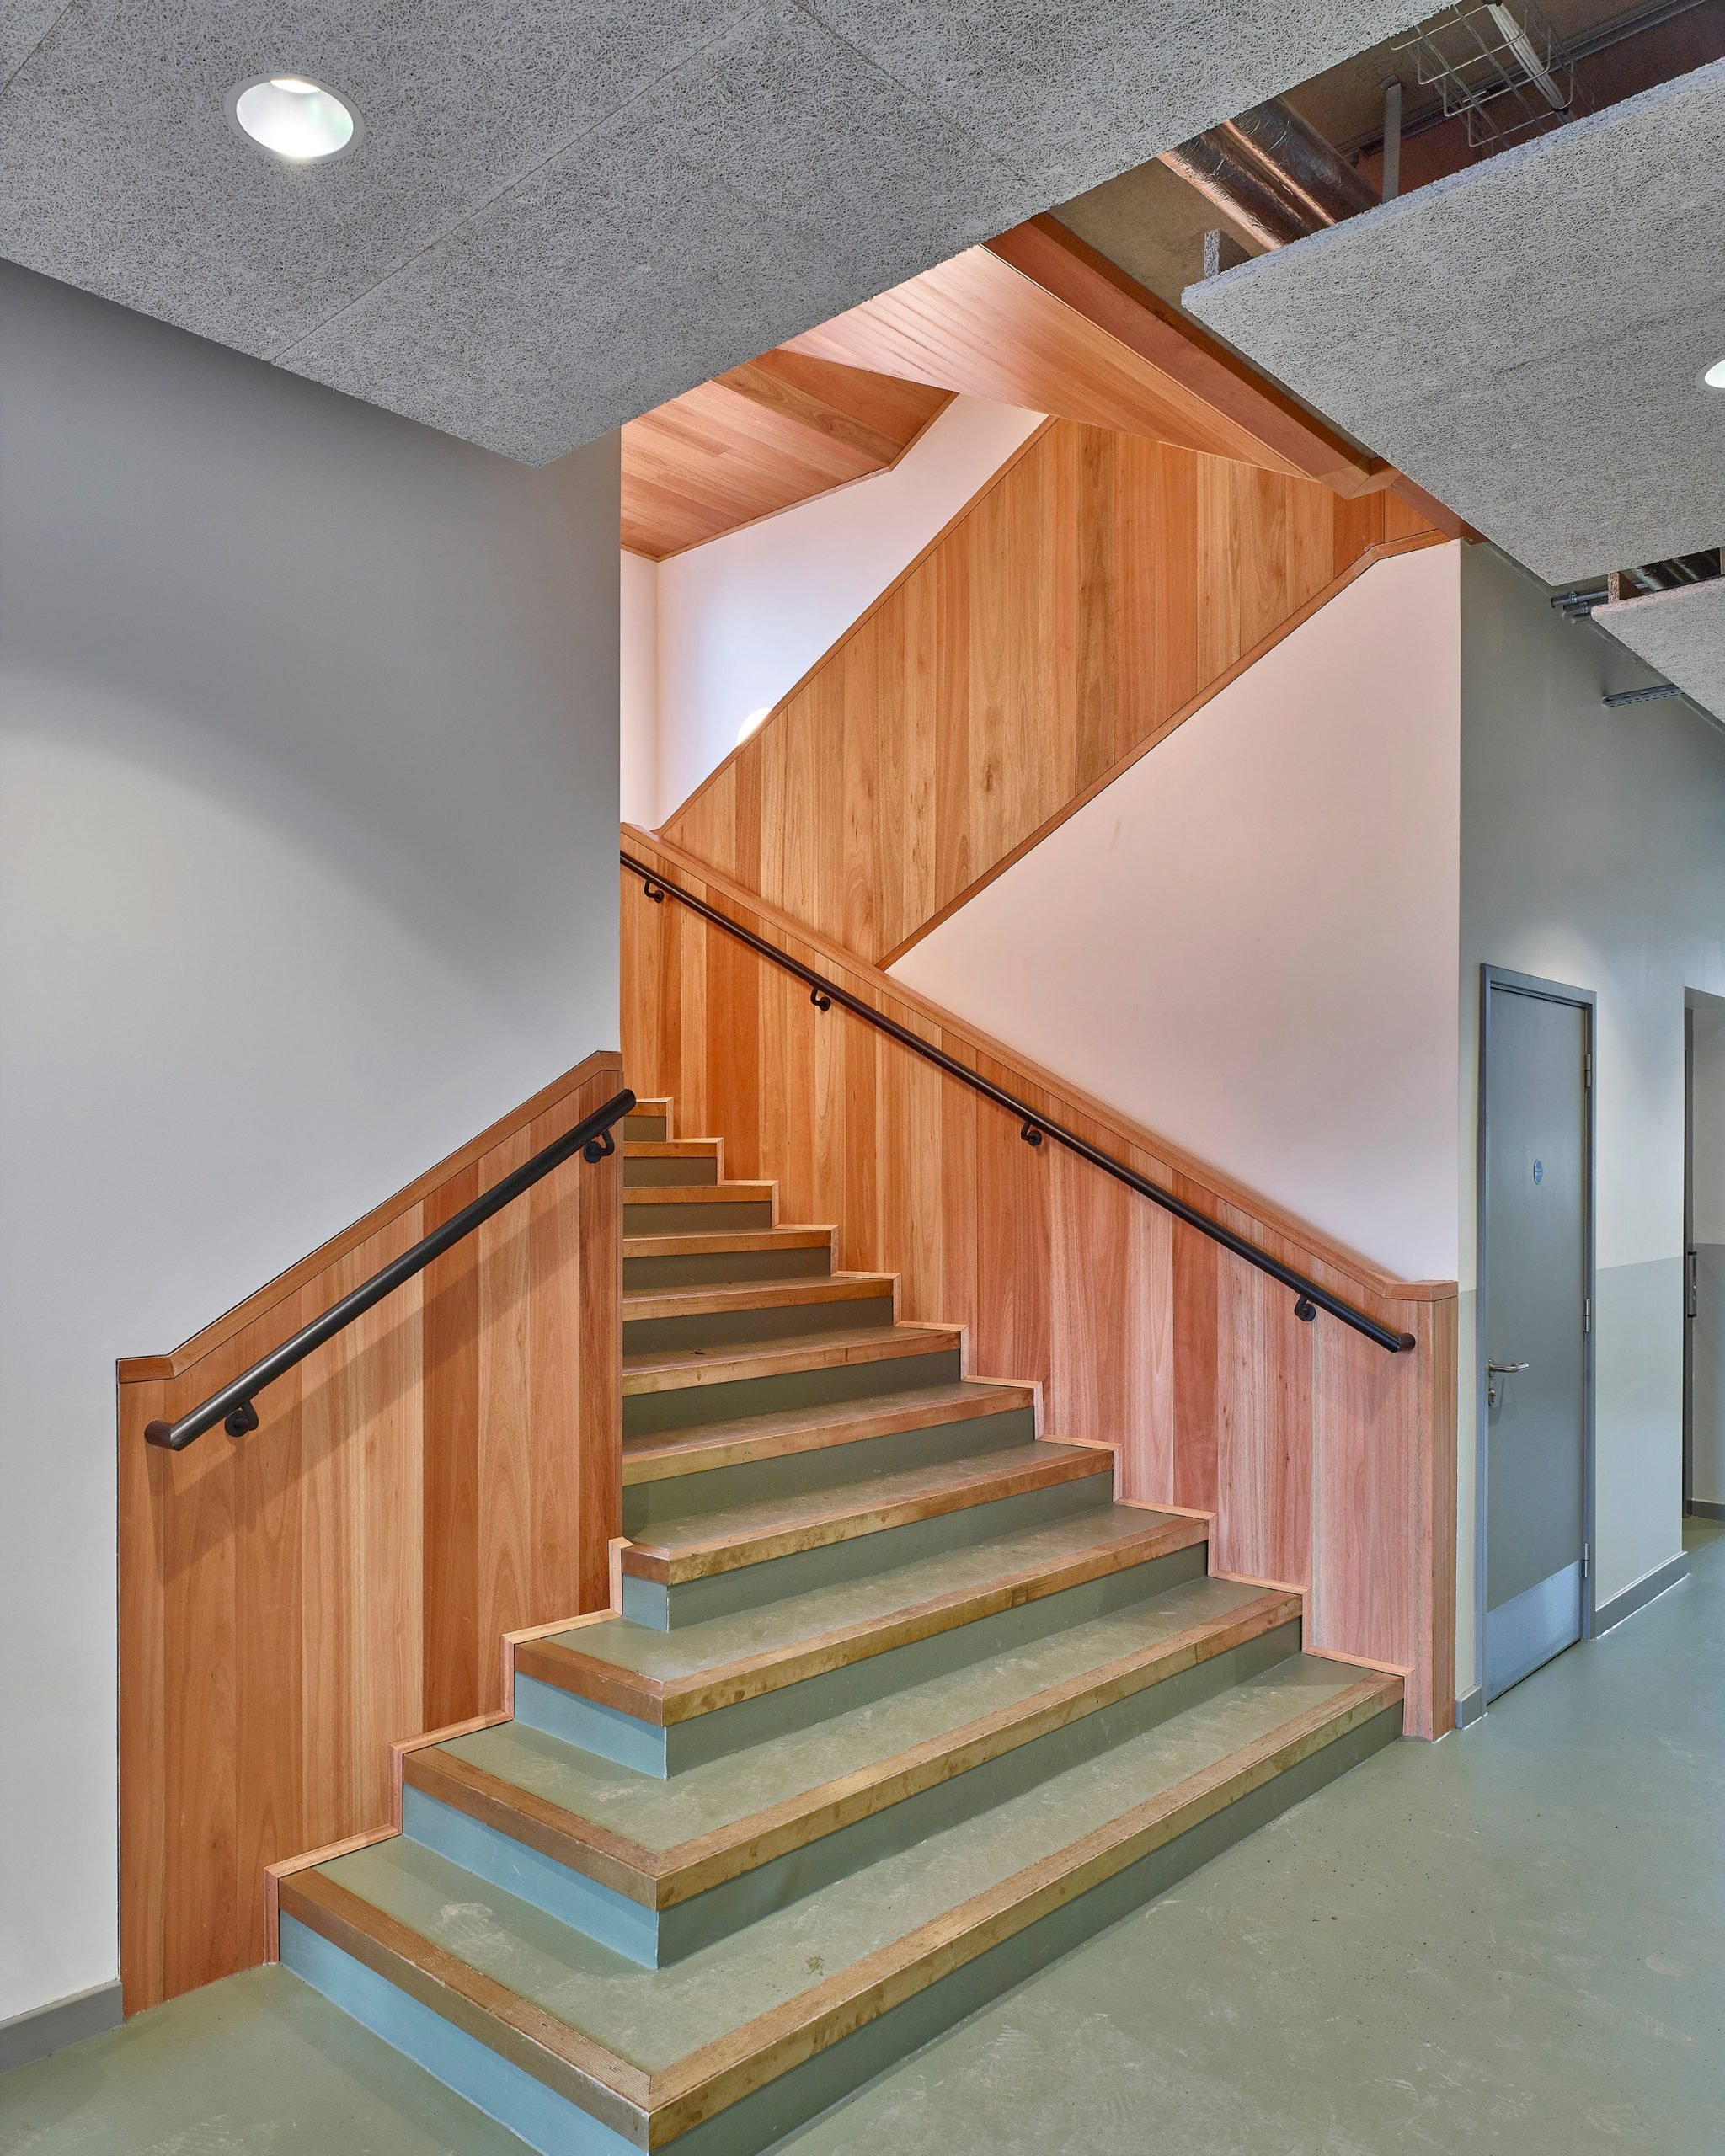 Timber lined stairwell with metal treads